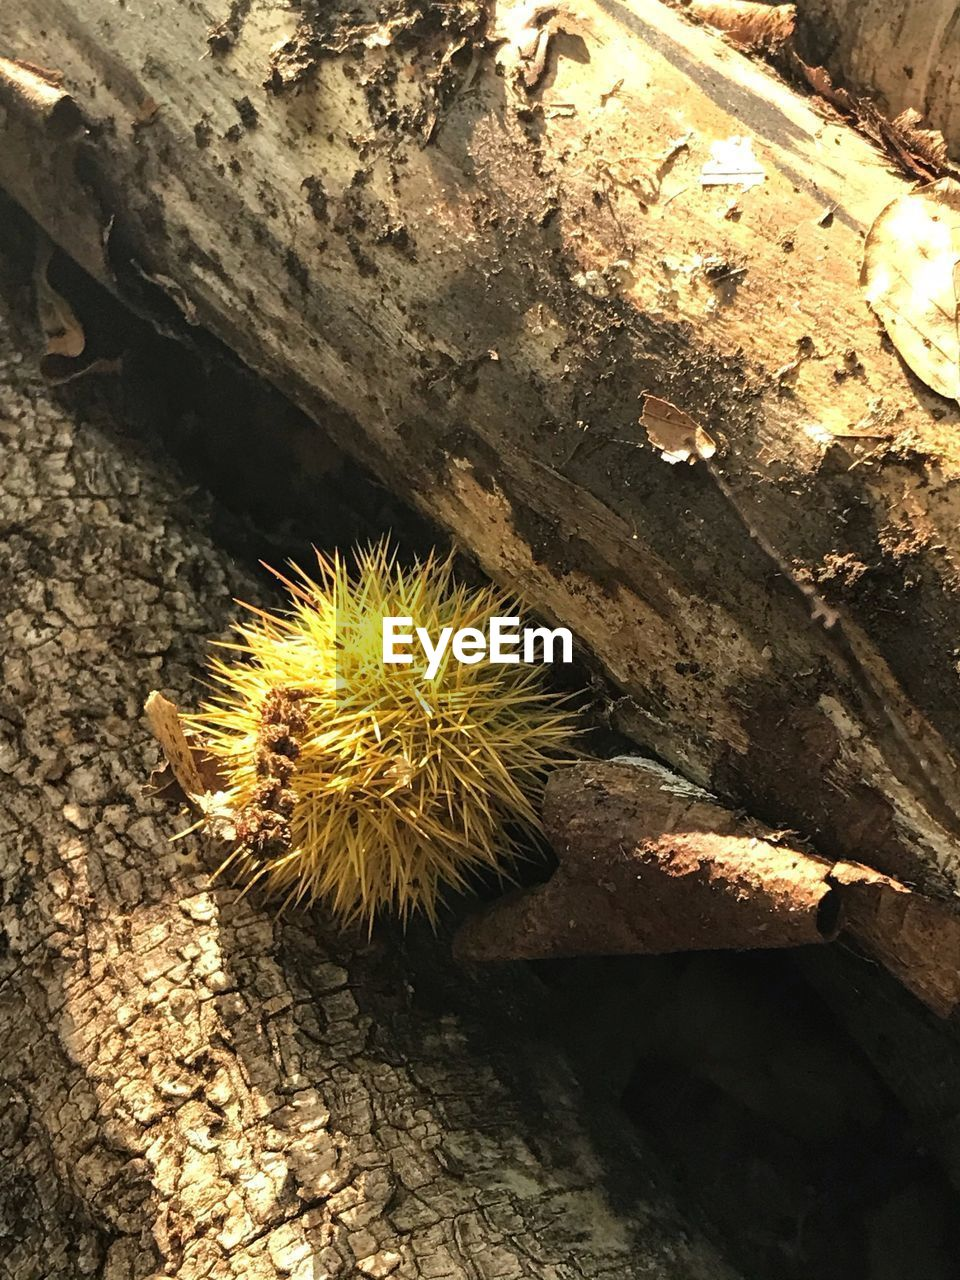 animals in the wild, animal wildlife, close-up, animal, one animal, no people, insect, animal themes, invertebrate, high angle view, day, nature, outdoors, spiked, caterpillar, chestnut - food, solid, food, textured, rock, spiky